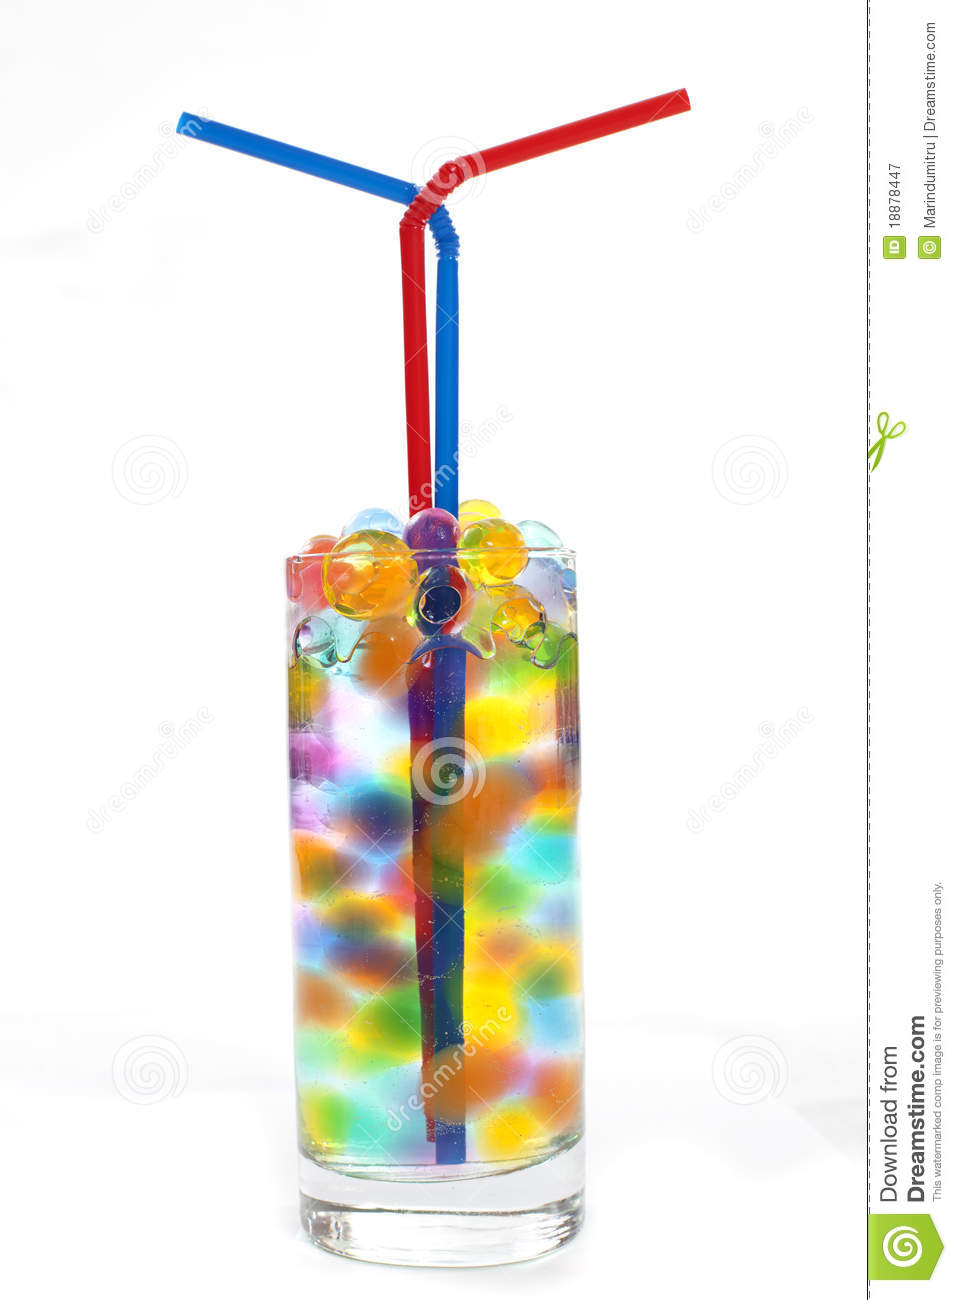 Straws in a glass of water stock illustration  Illustration